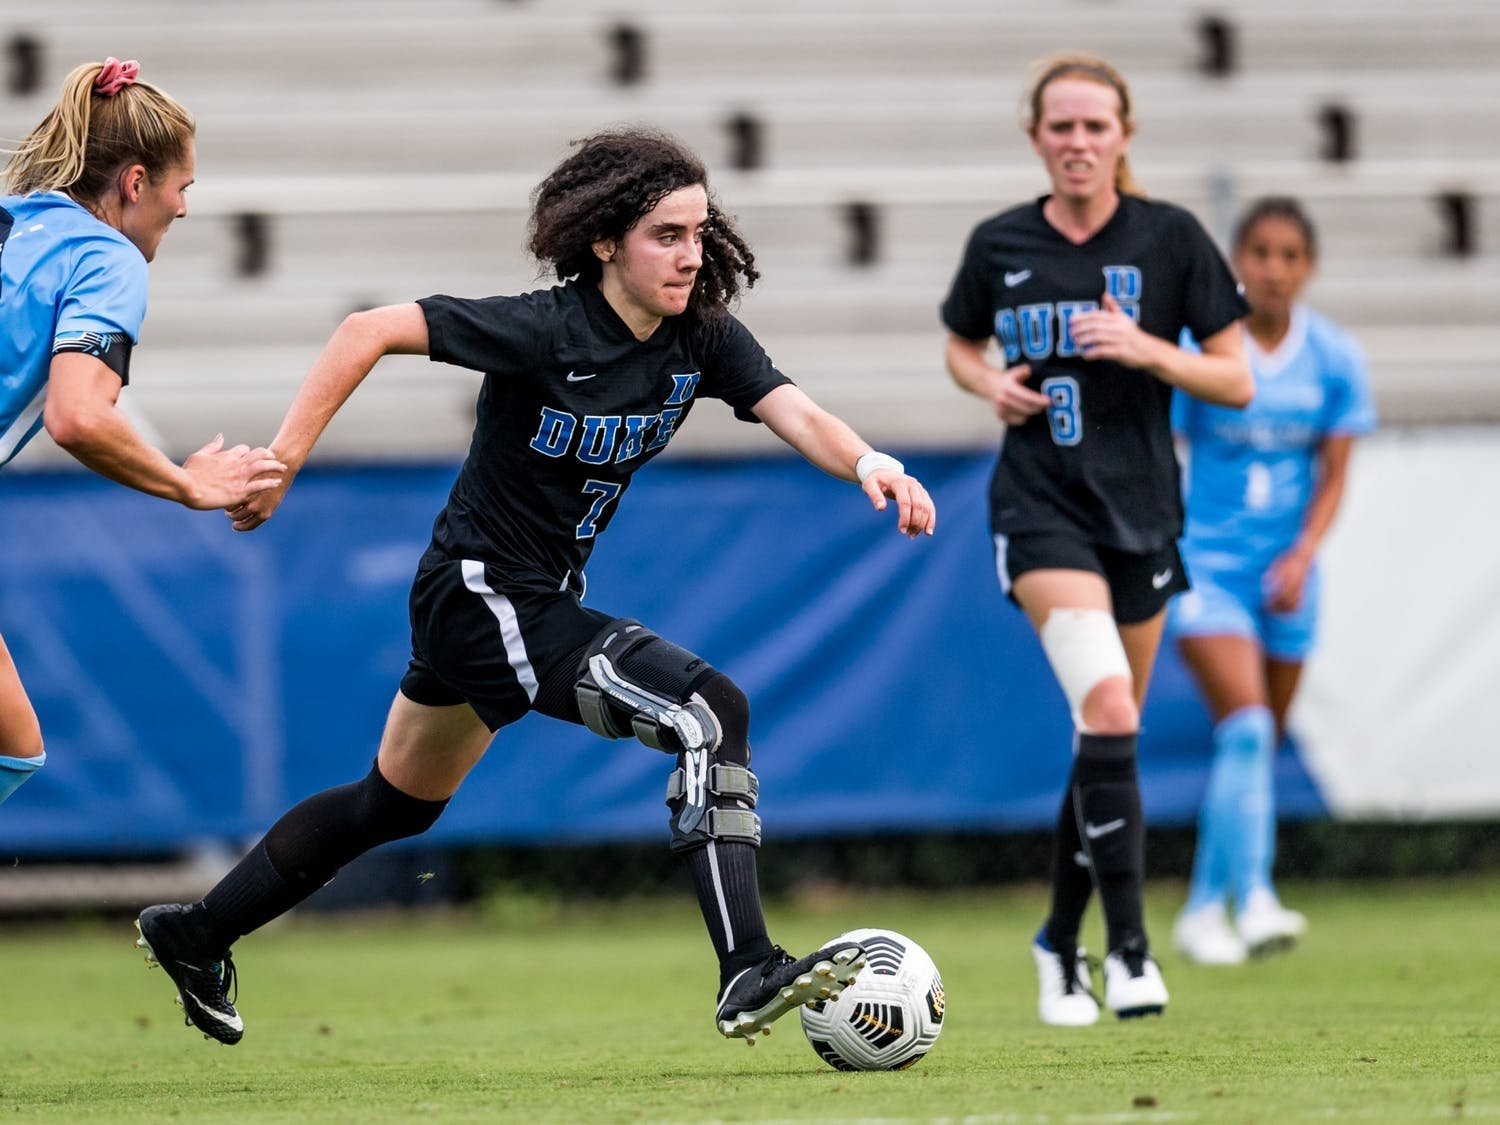 Sophomore midfielder Sophie Jones was named to the All-ACC First Team this past fall before the season resumed in the spring.